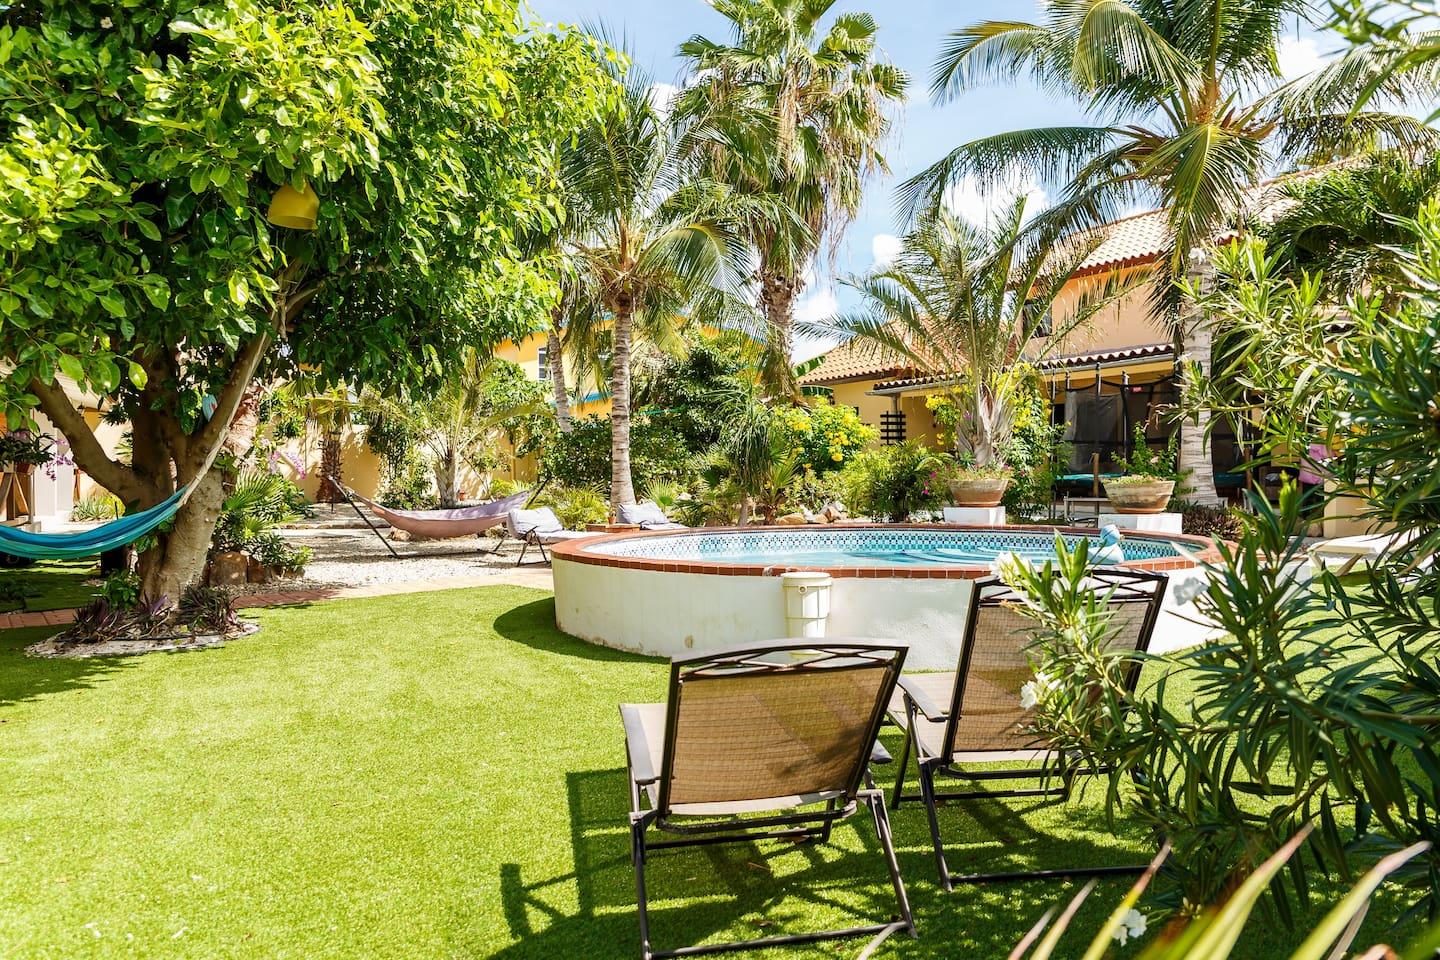 Garden view 2 rms Apt Palm near Ritz - Guest suites for Rent in ...